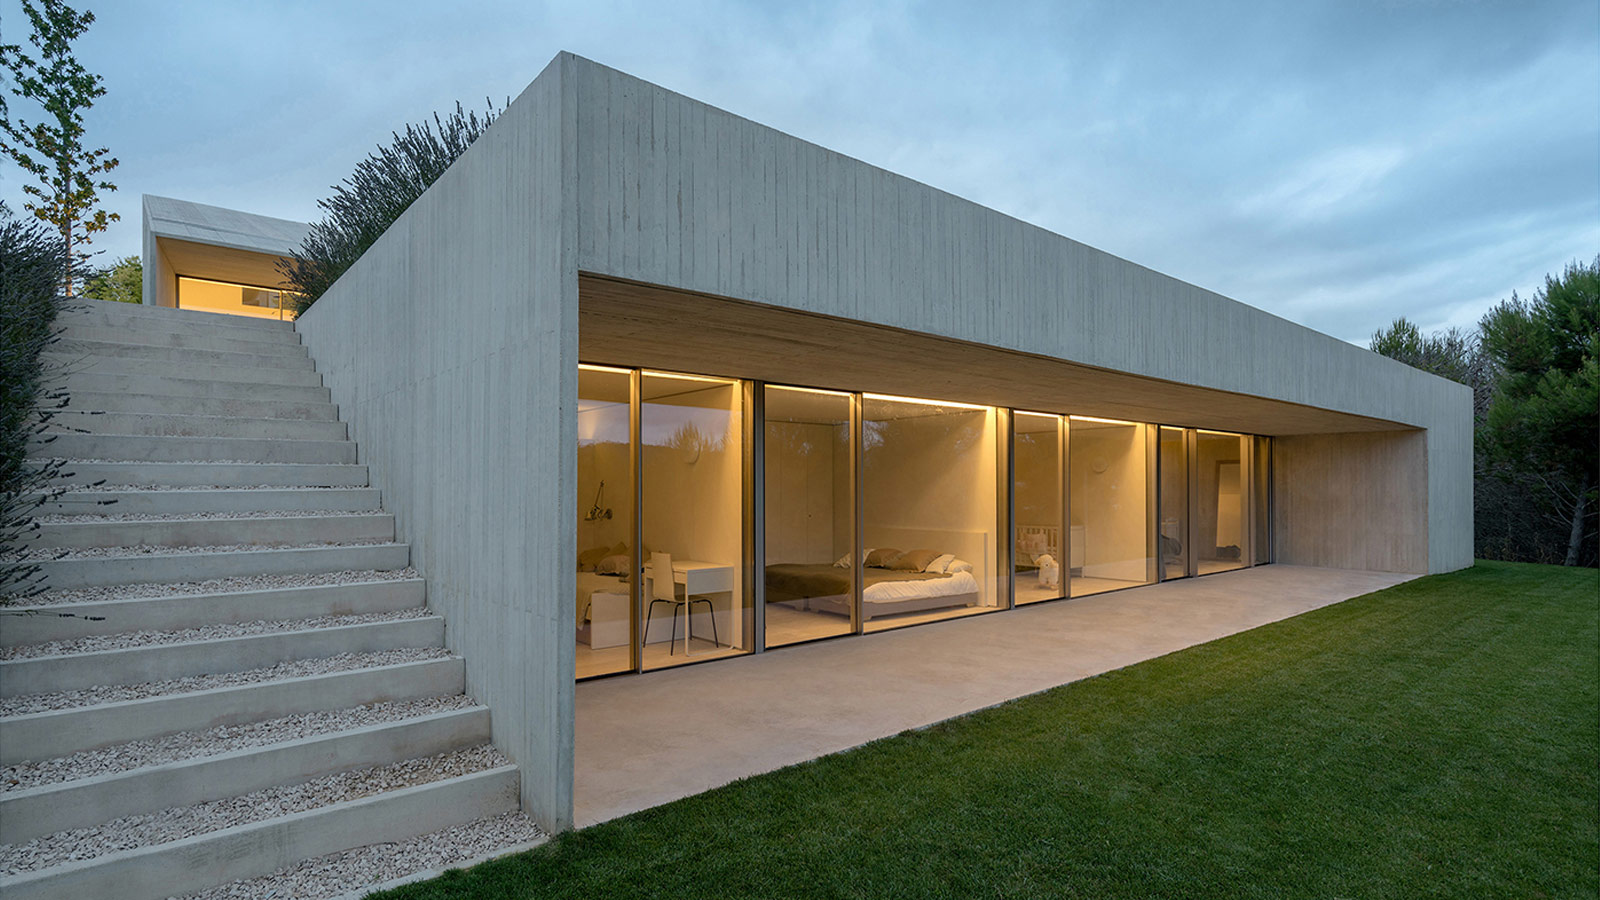 The 12th Porcelanosa Awards Finalists: A minimal-styled house built on a slope